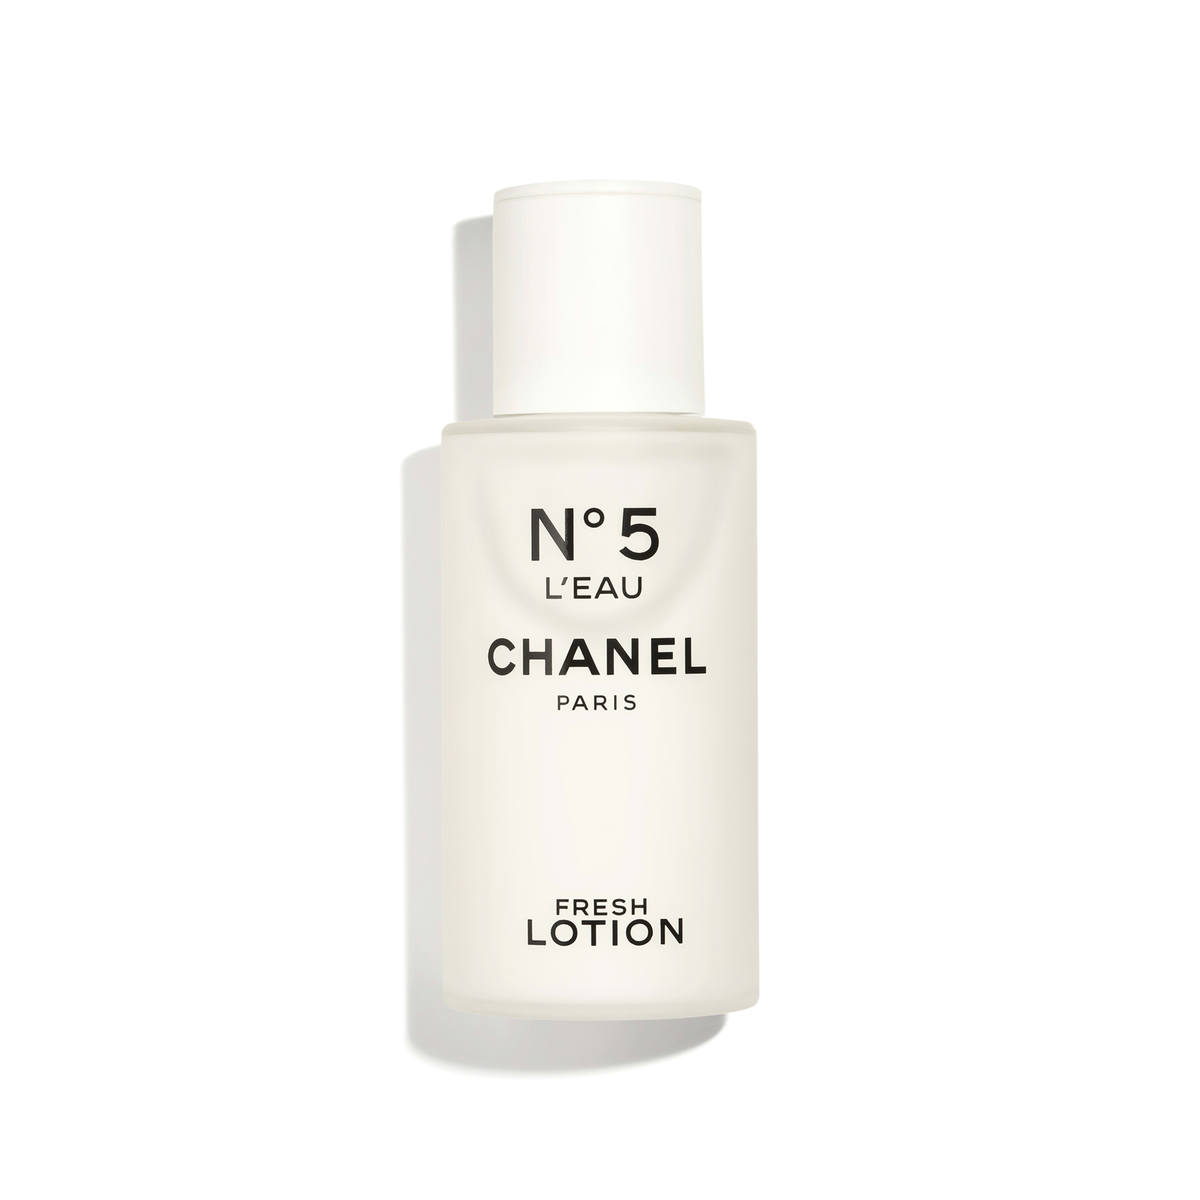 Chanel Launches New Shower Range In Time For Your Travels